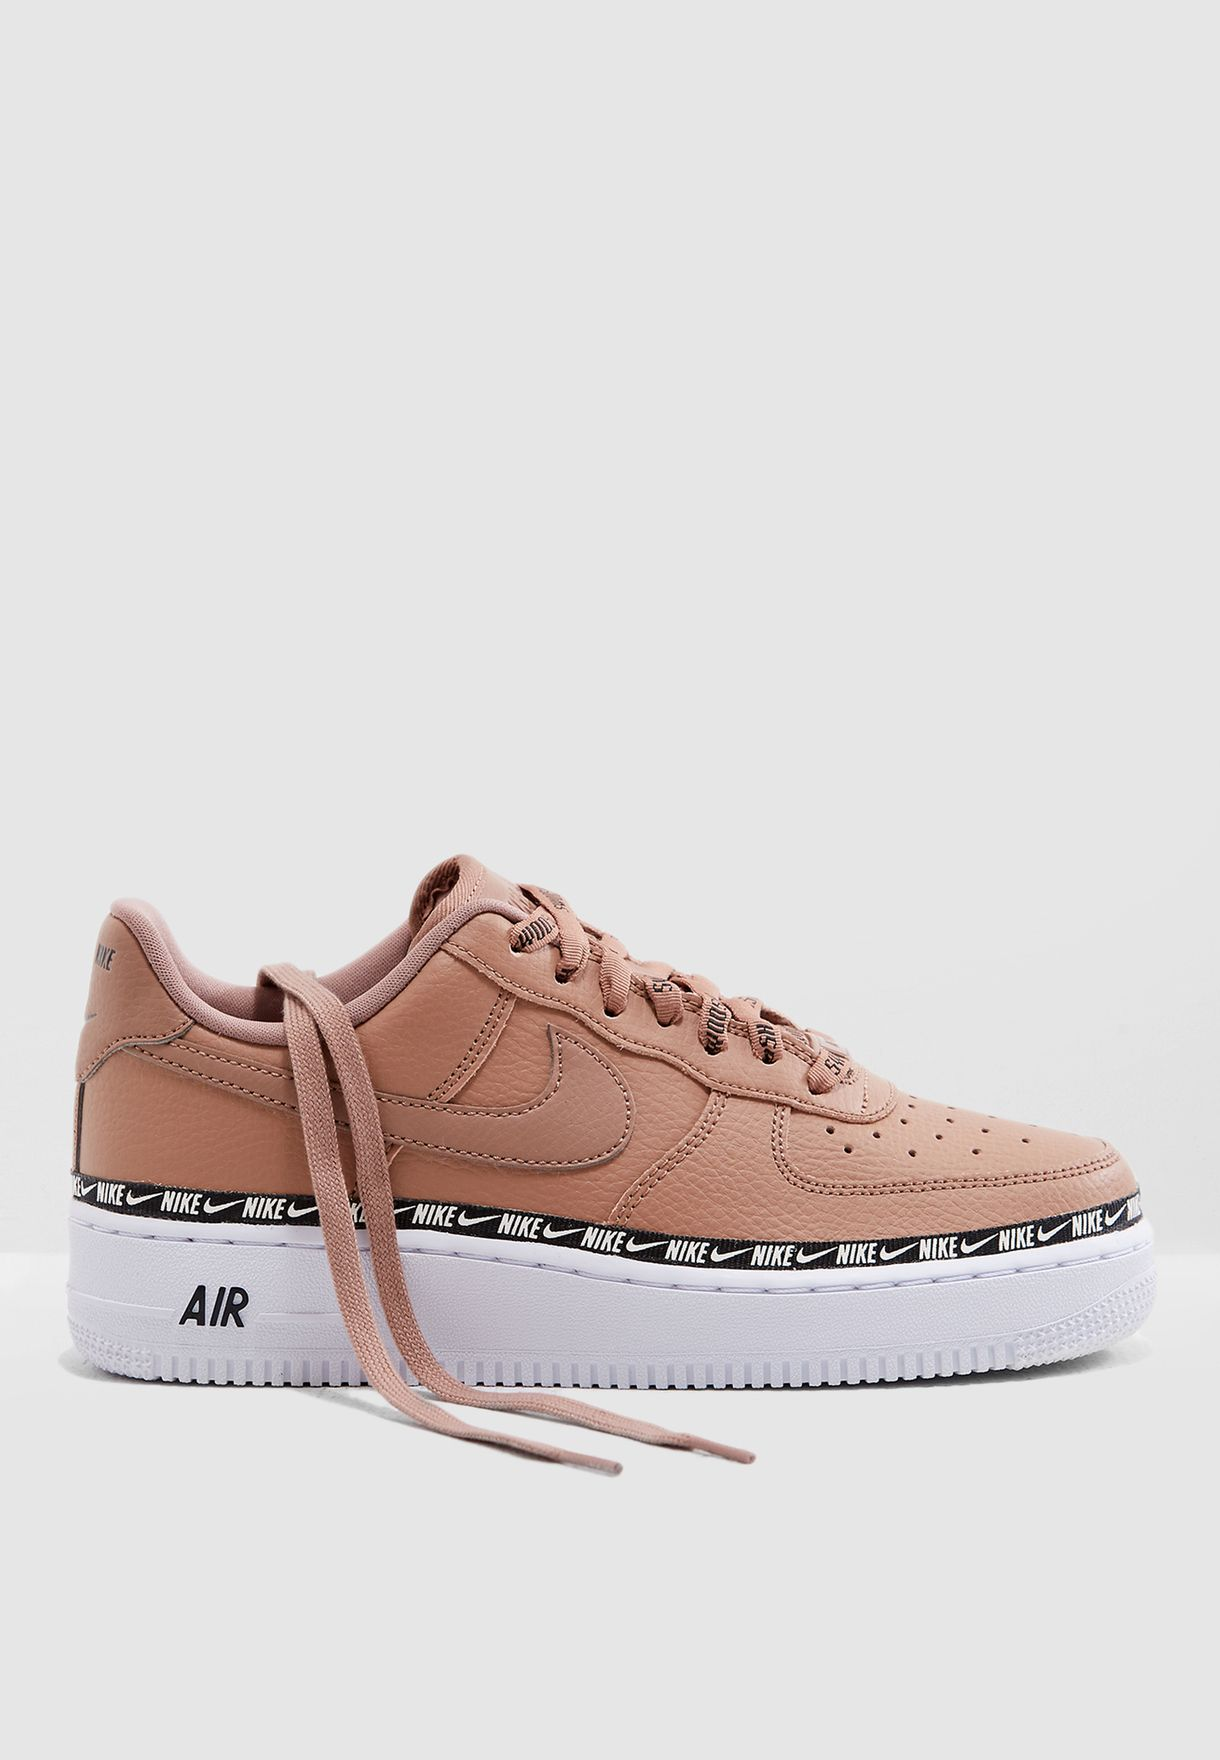 Nike Air Force 1 '07 Se PRM Womens Style: AH6827 201 Size: 7